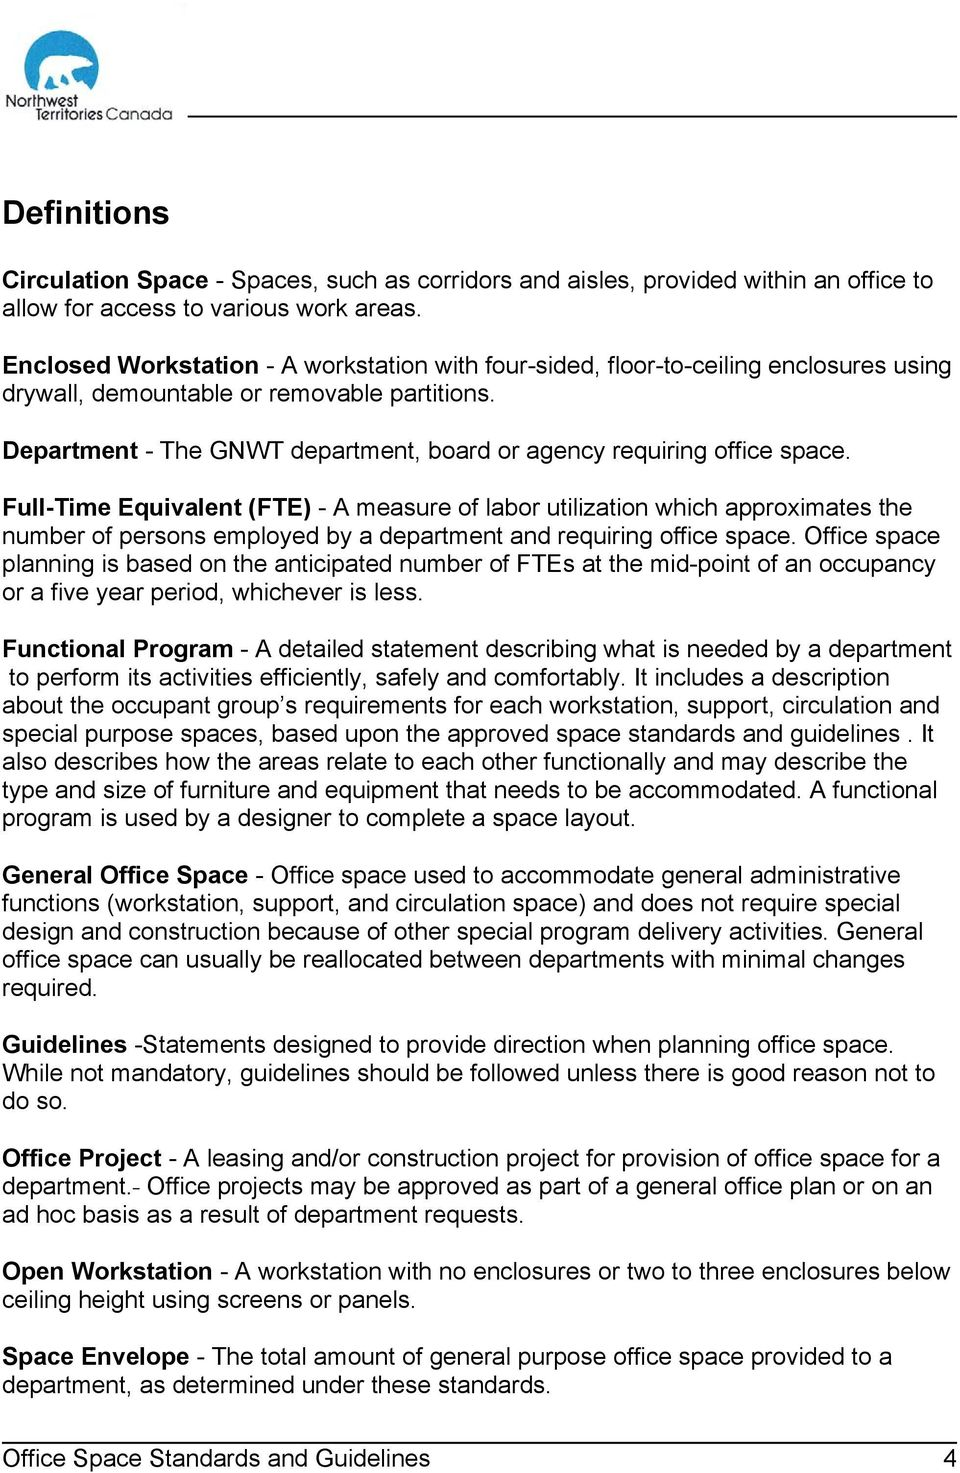 Attractive Department   The GNWT Department, Board Or Agency Requiring Office Space.